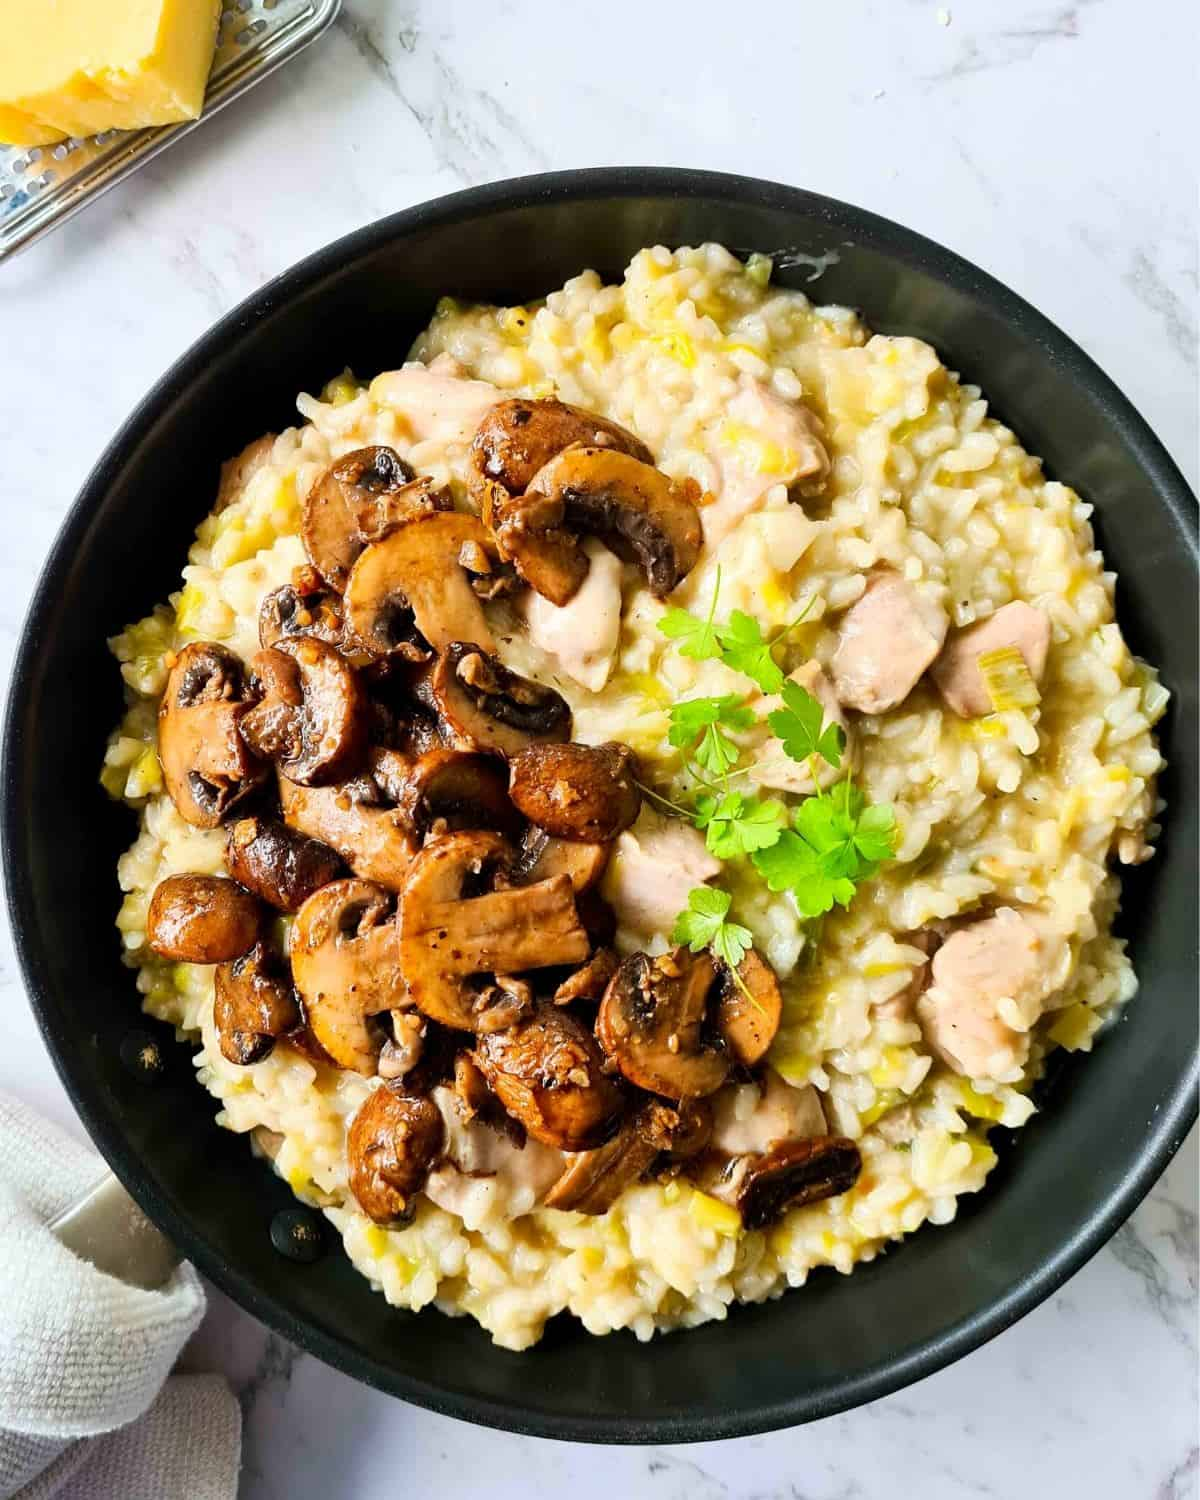 Cooked risotto in a large black pan